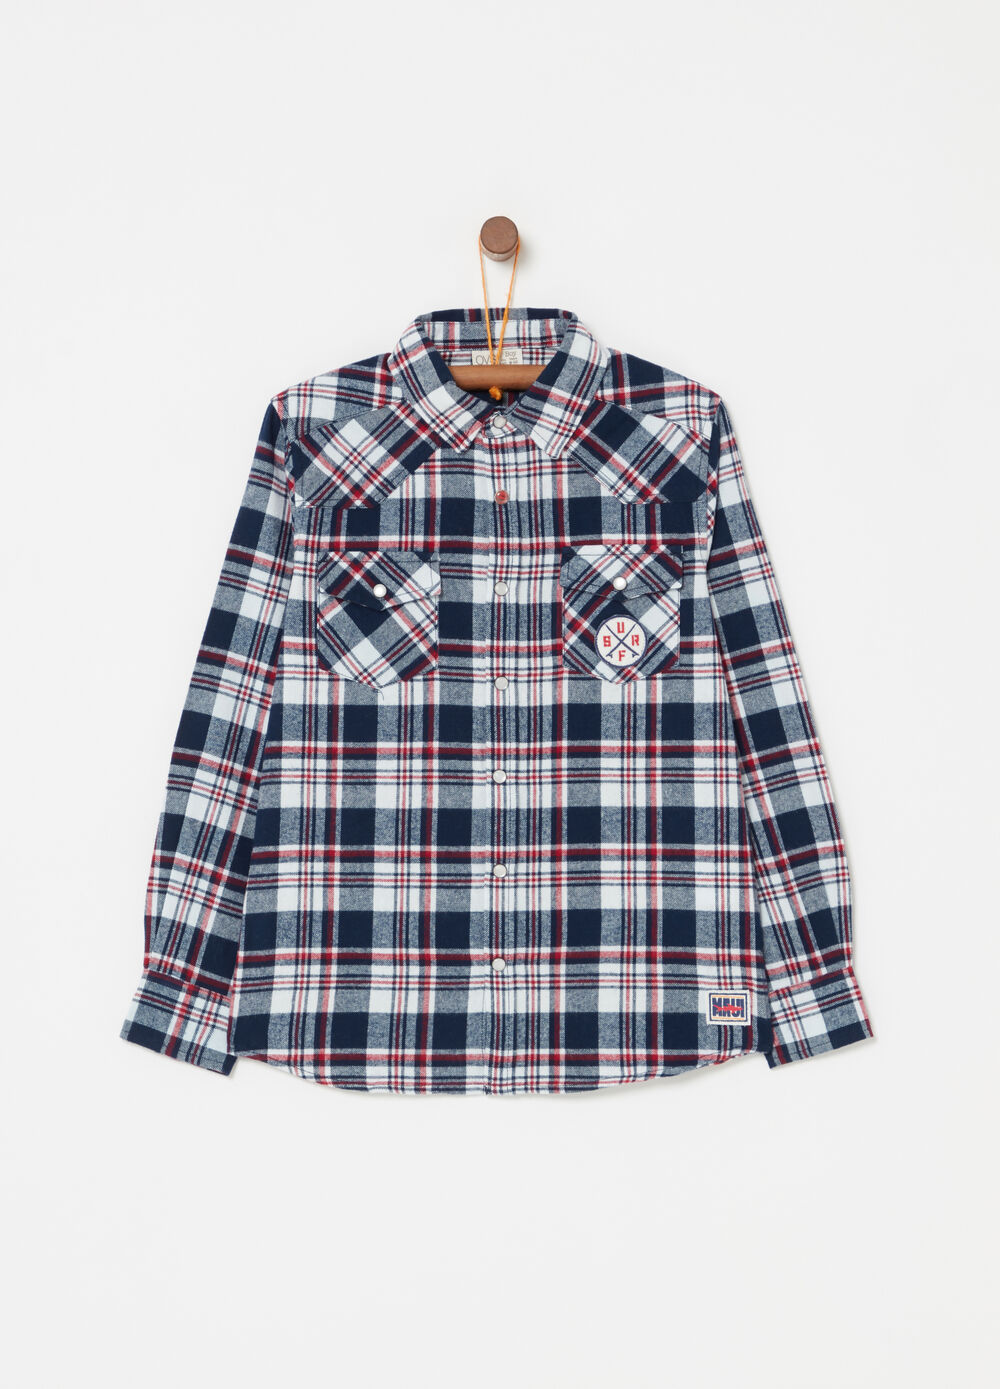 100% cotton flannel shirt by Maui and Sons